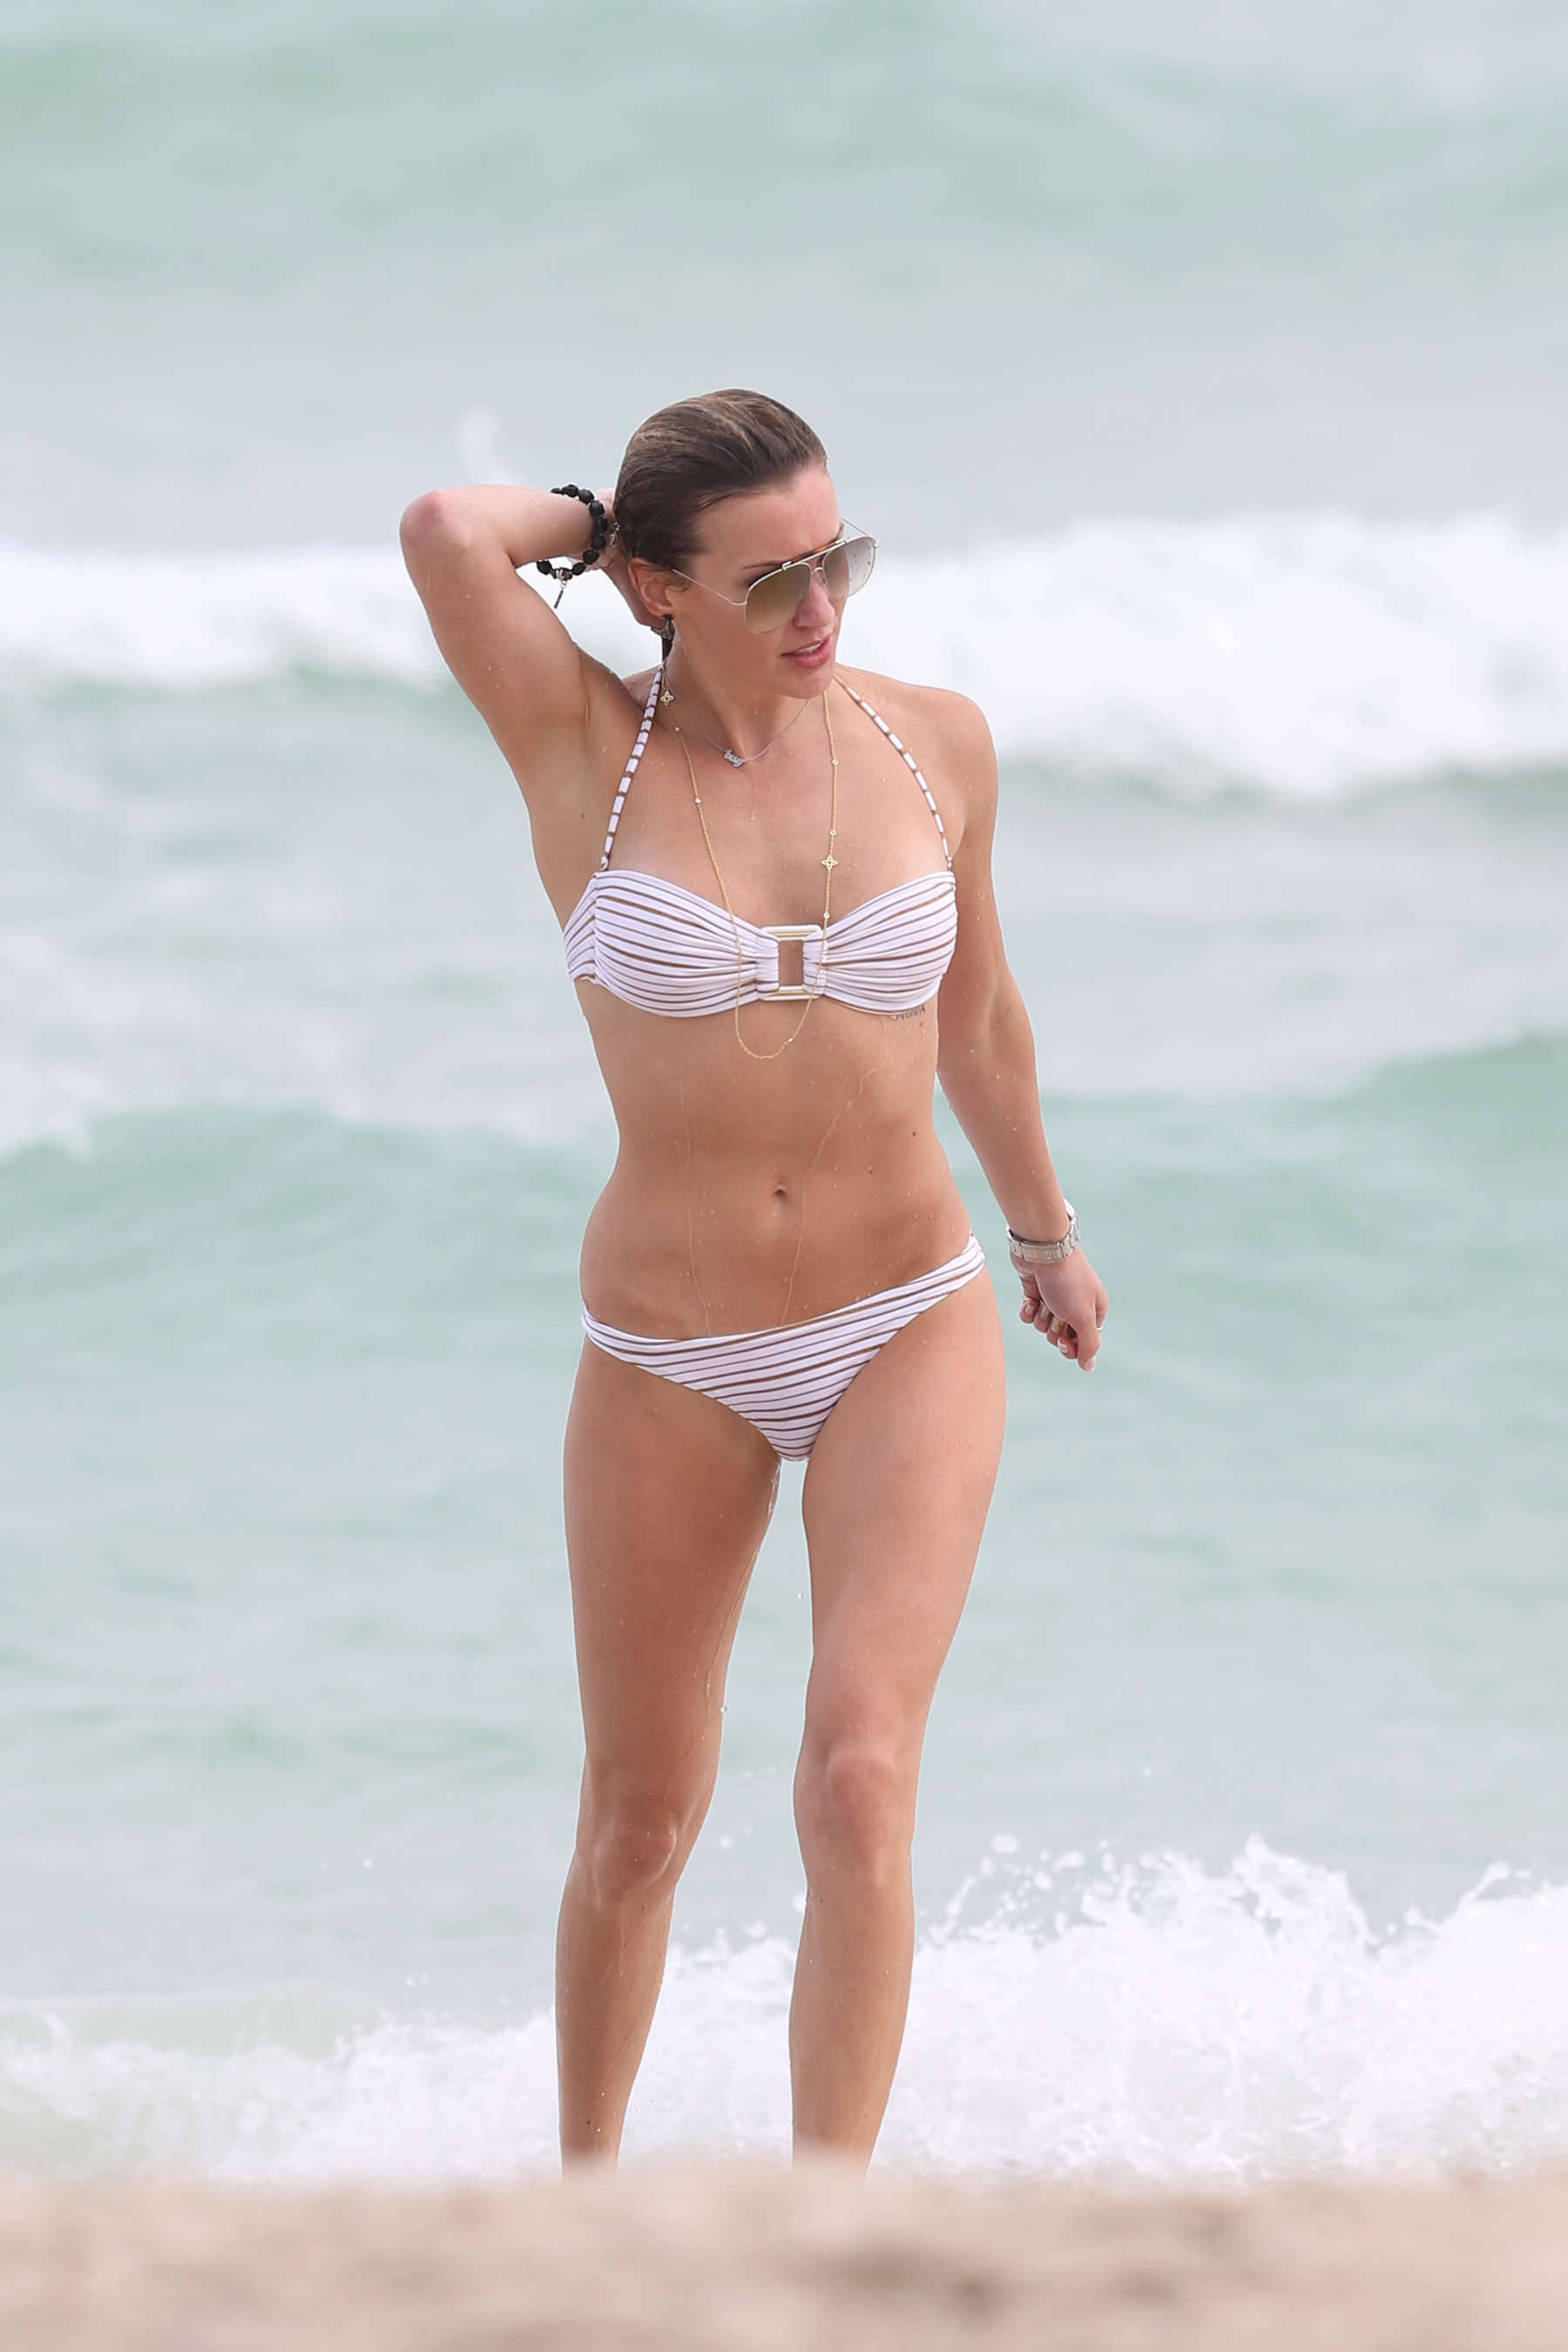 Katie cassidy sexy 27 Photos nudes (56 photos), Instagram Celebrity photo